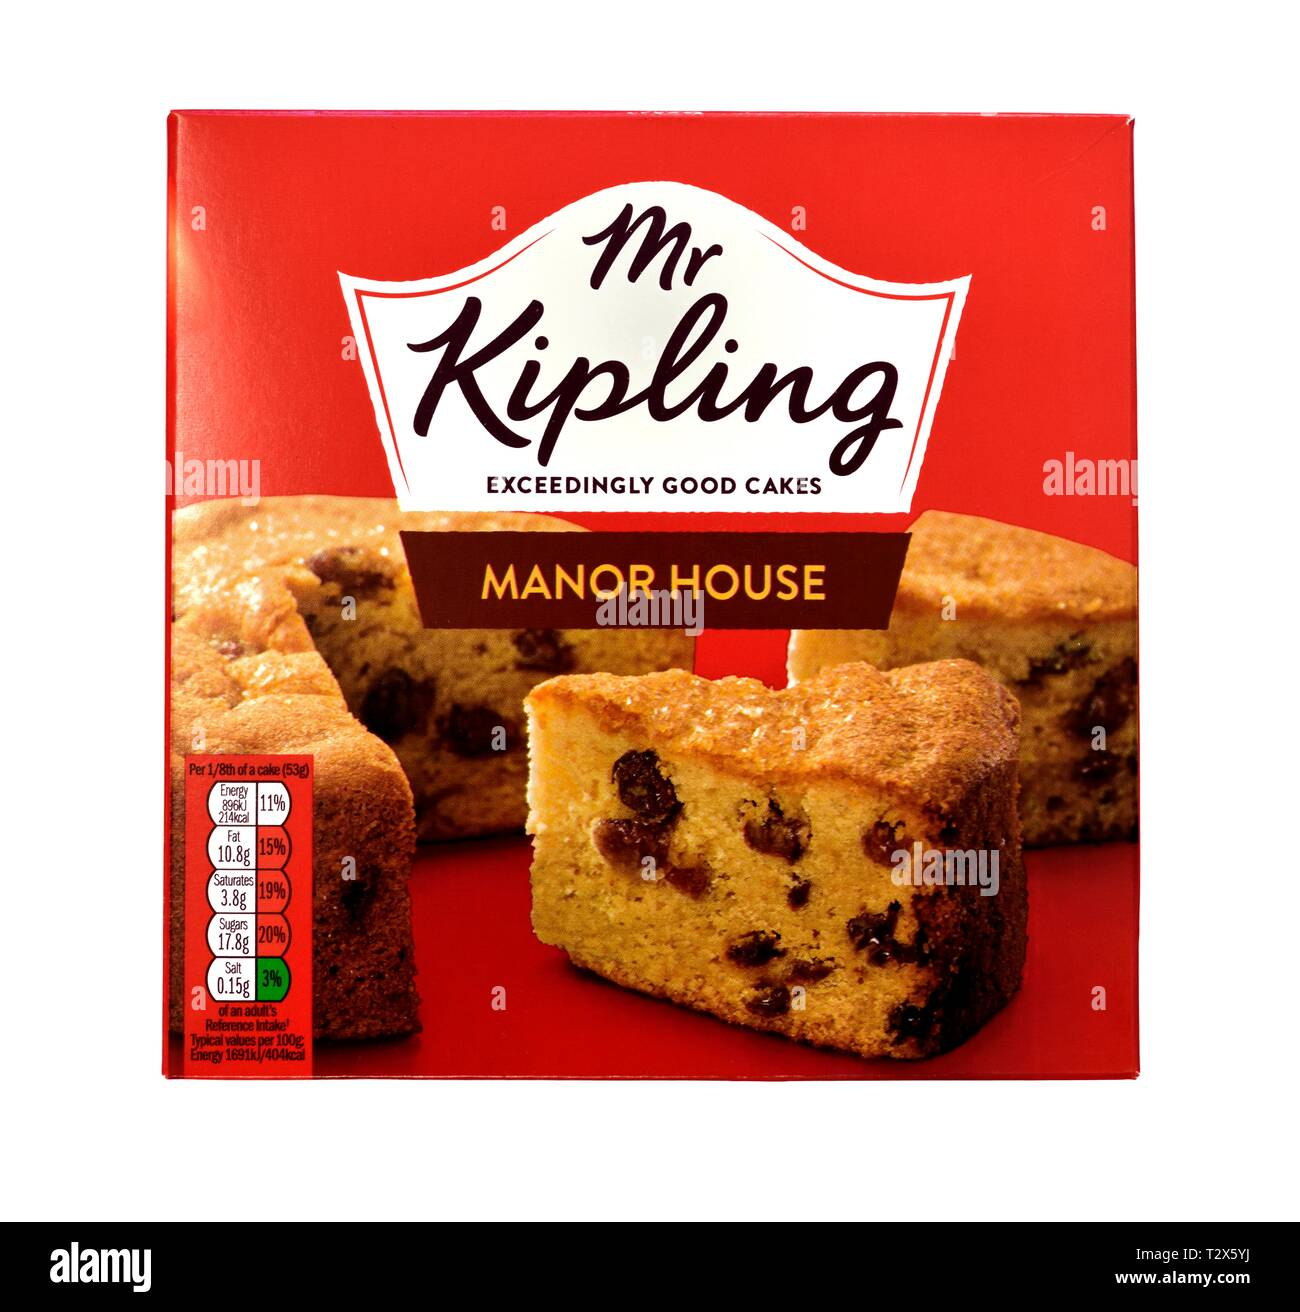 Mr Kipling Manor House Cake Stock Photo